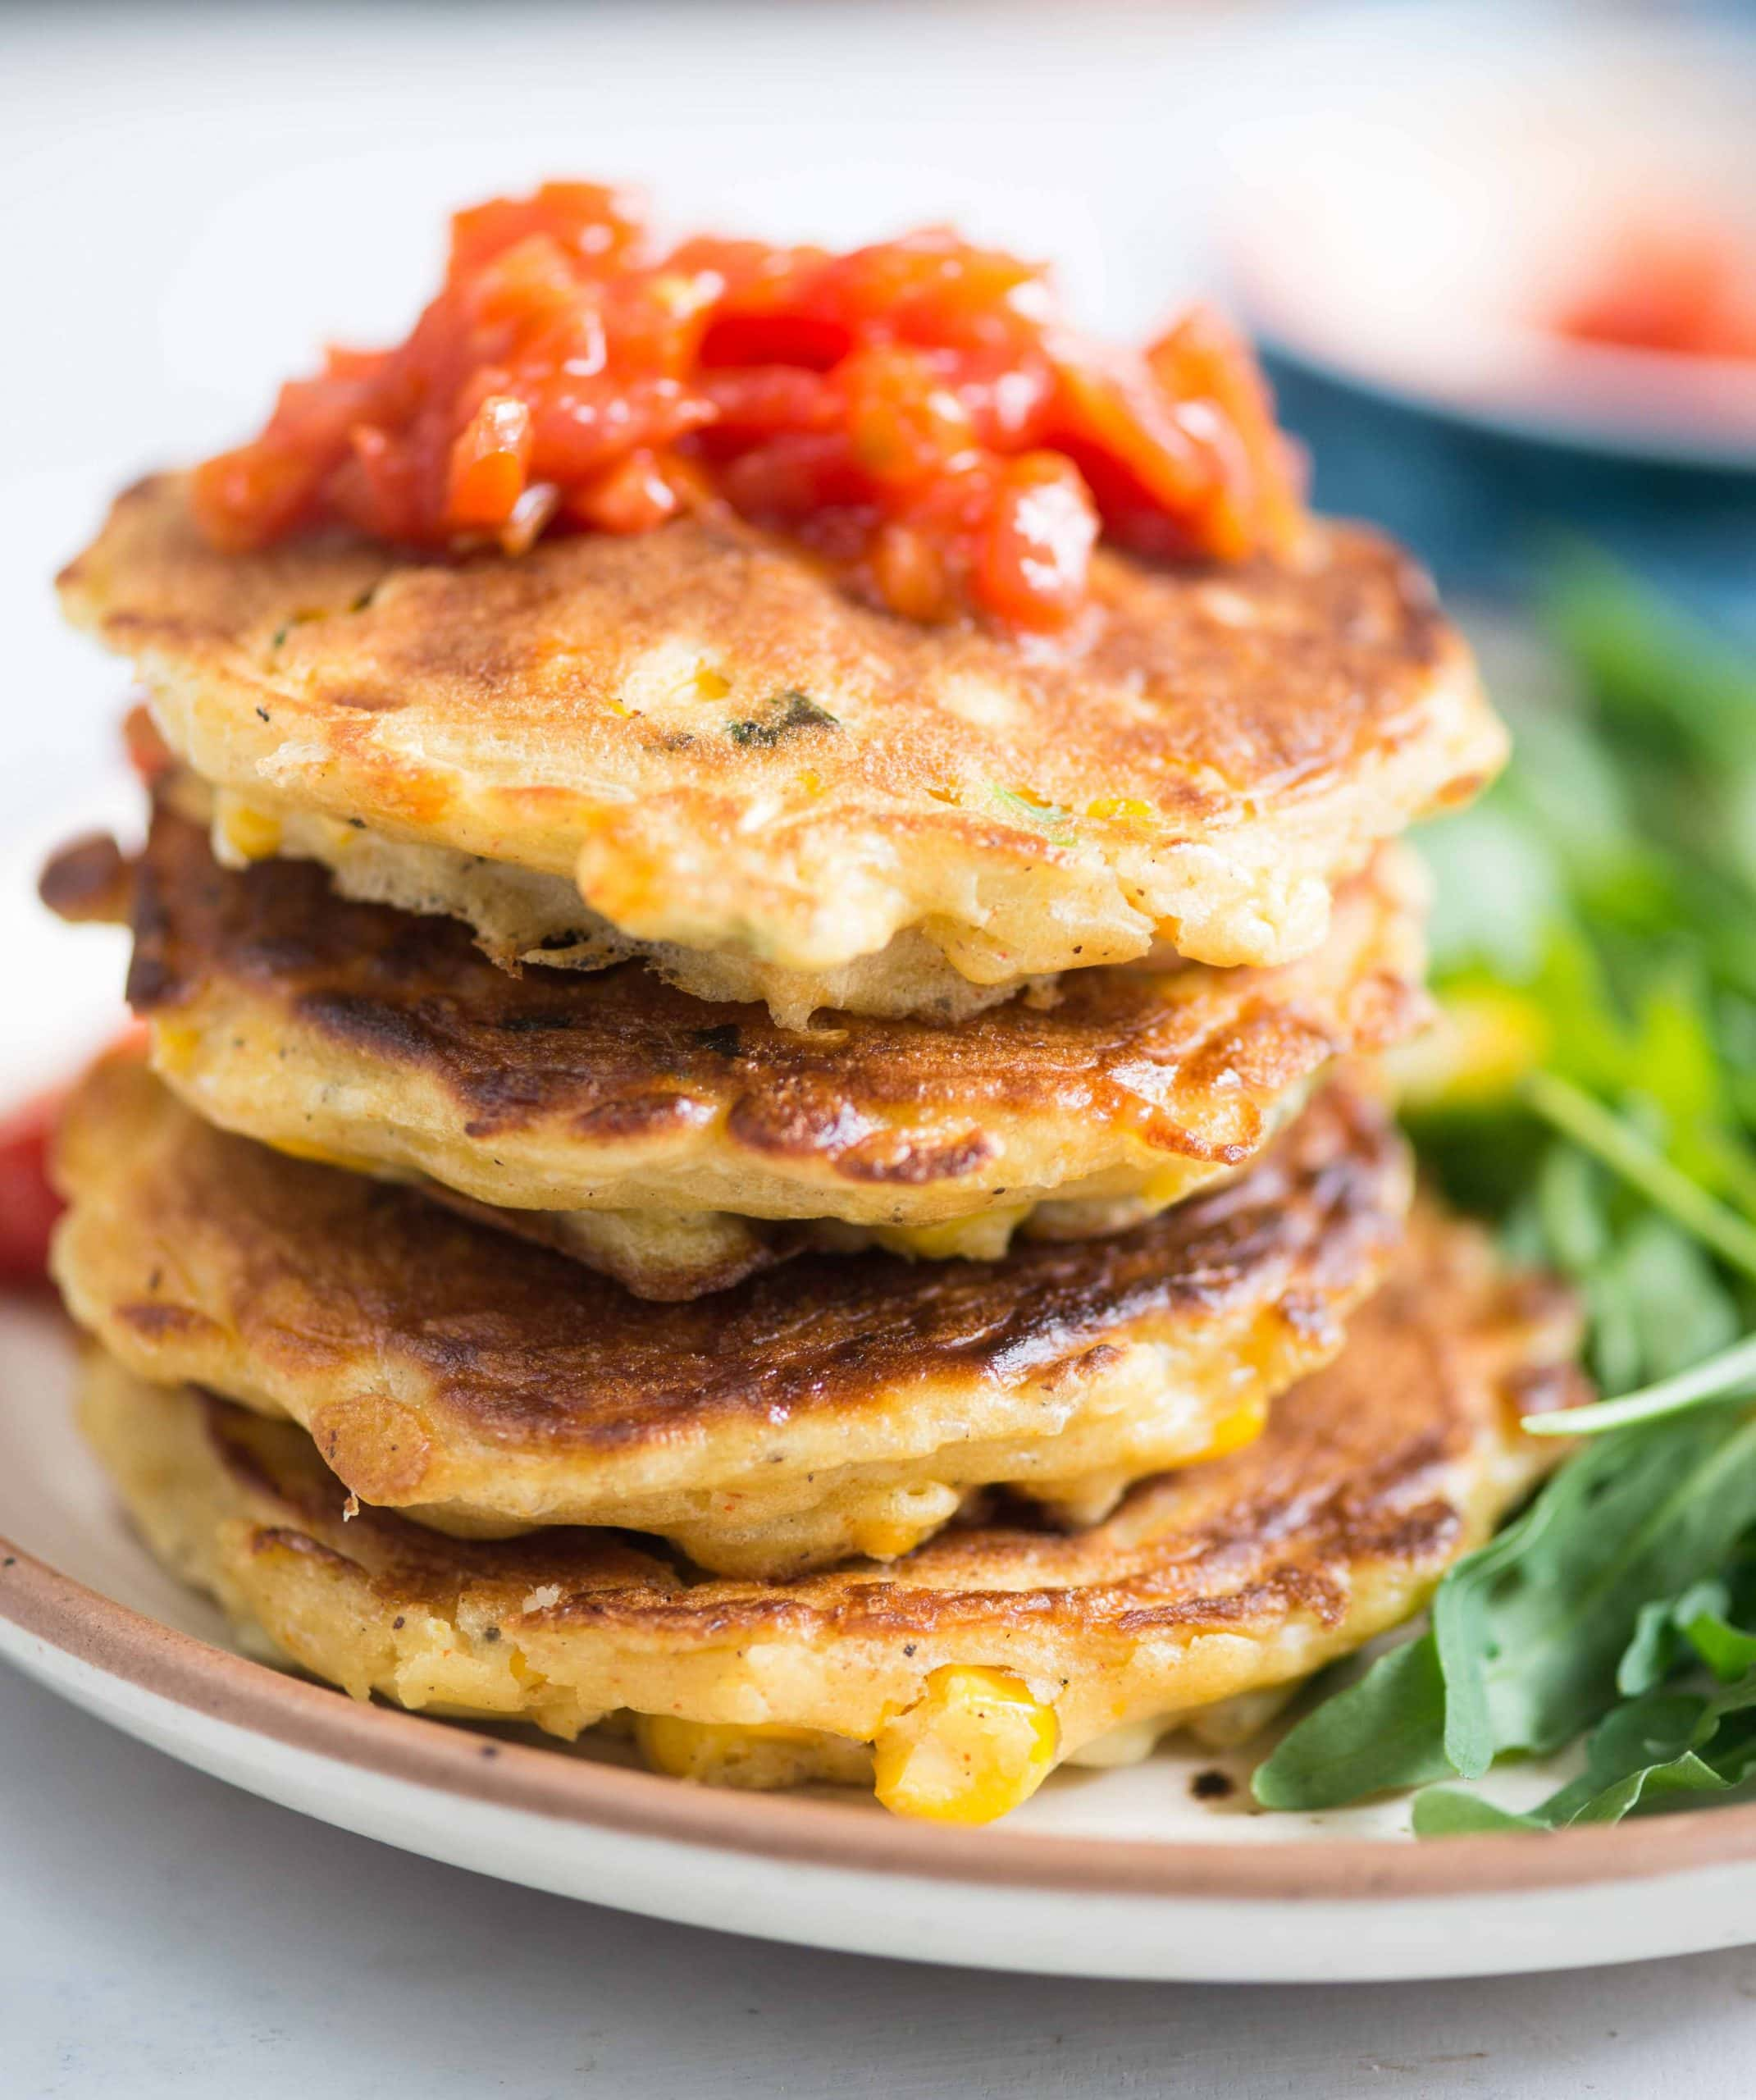 Cheesy corn fritters served with tomato salsa